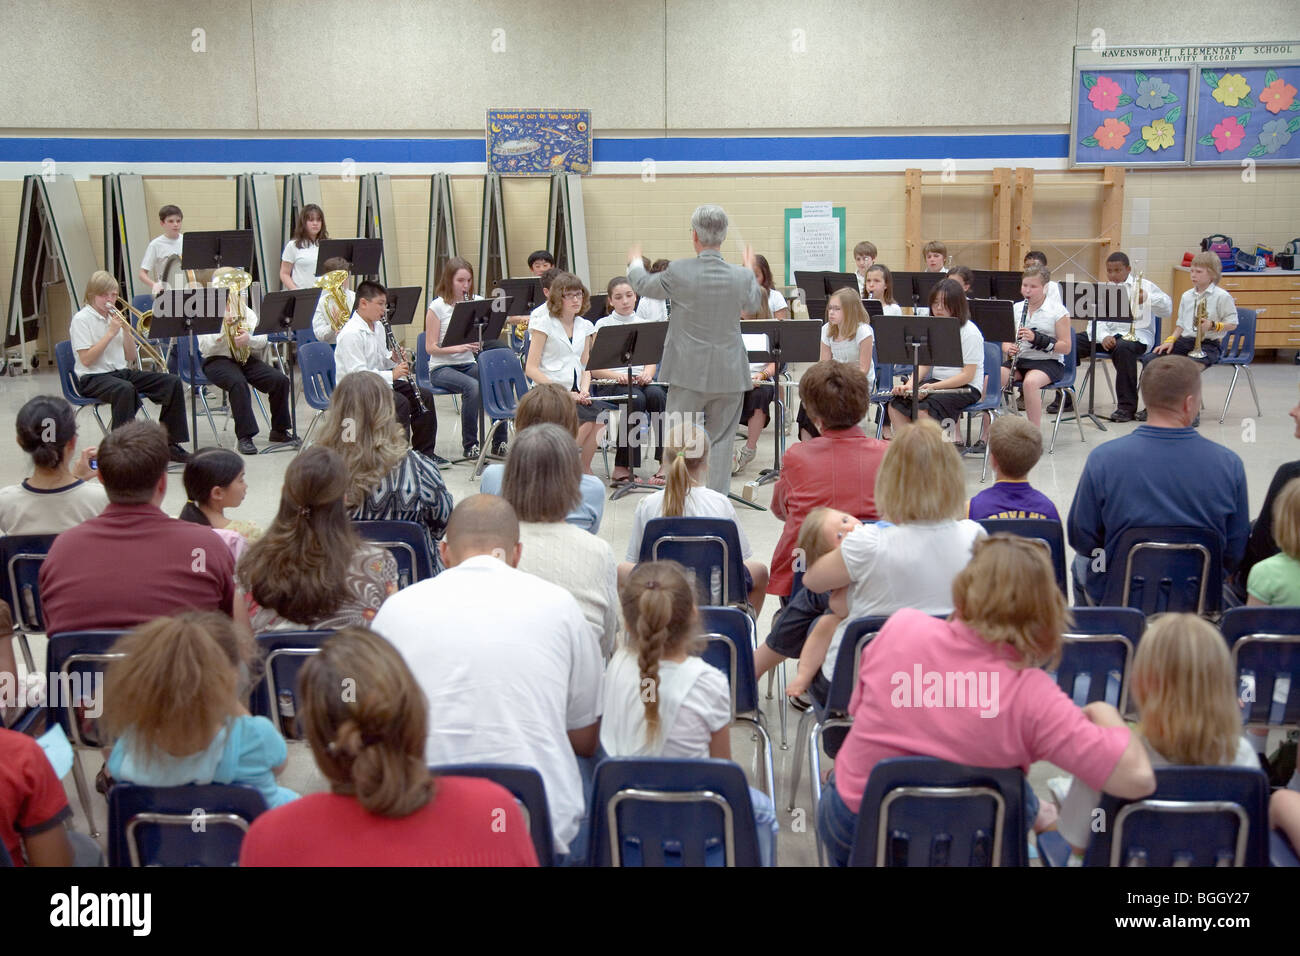 Parents and family watch 5th grade band recital at Ravensworth Elementary, Fairfax County, Springfield, Virginia - Stock Image